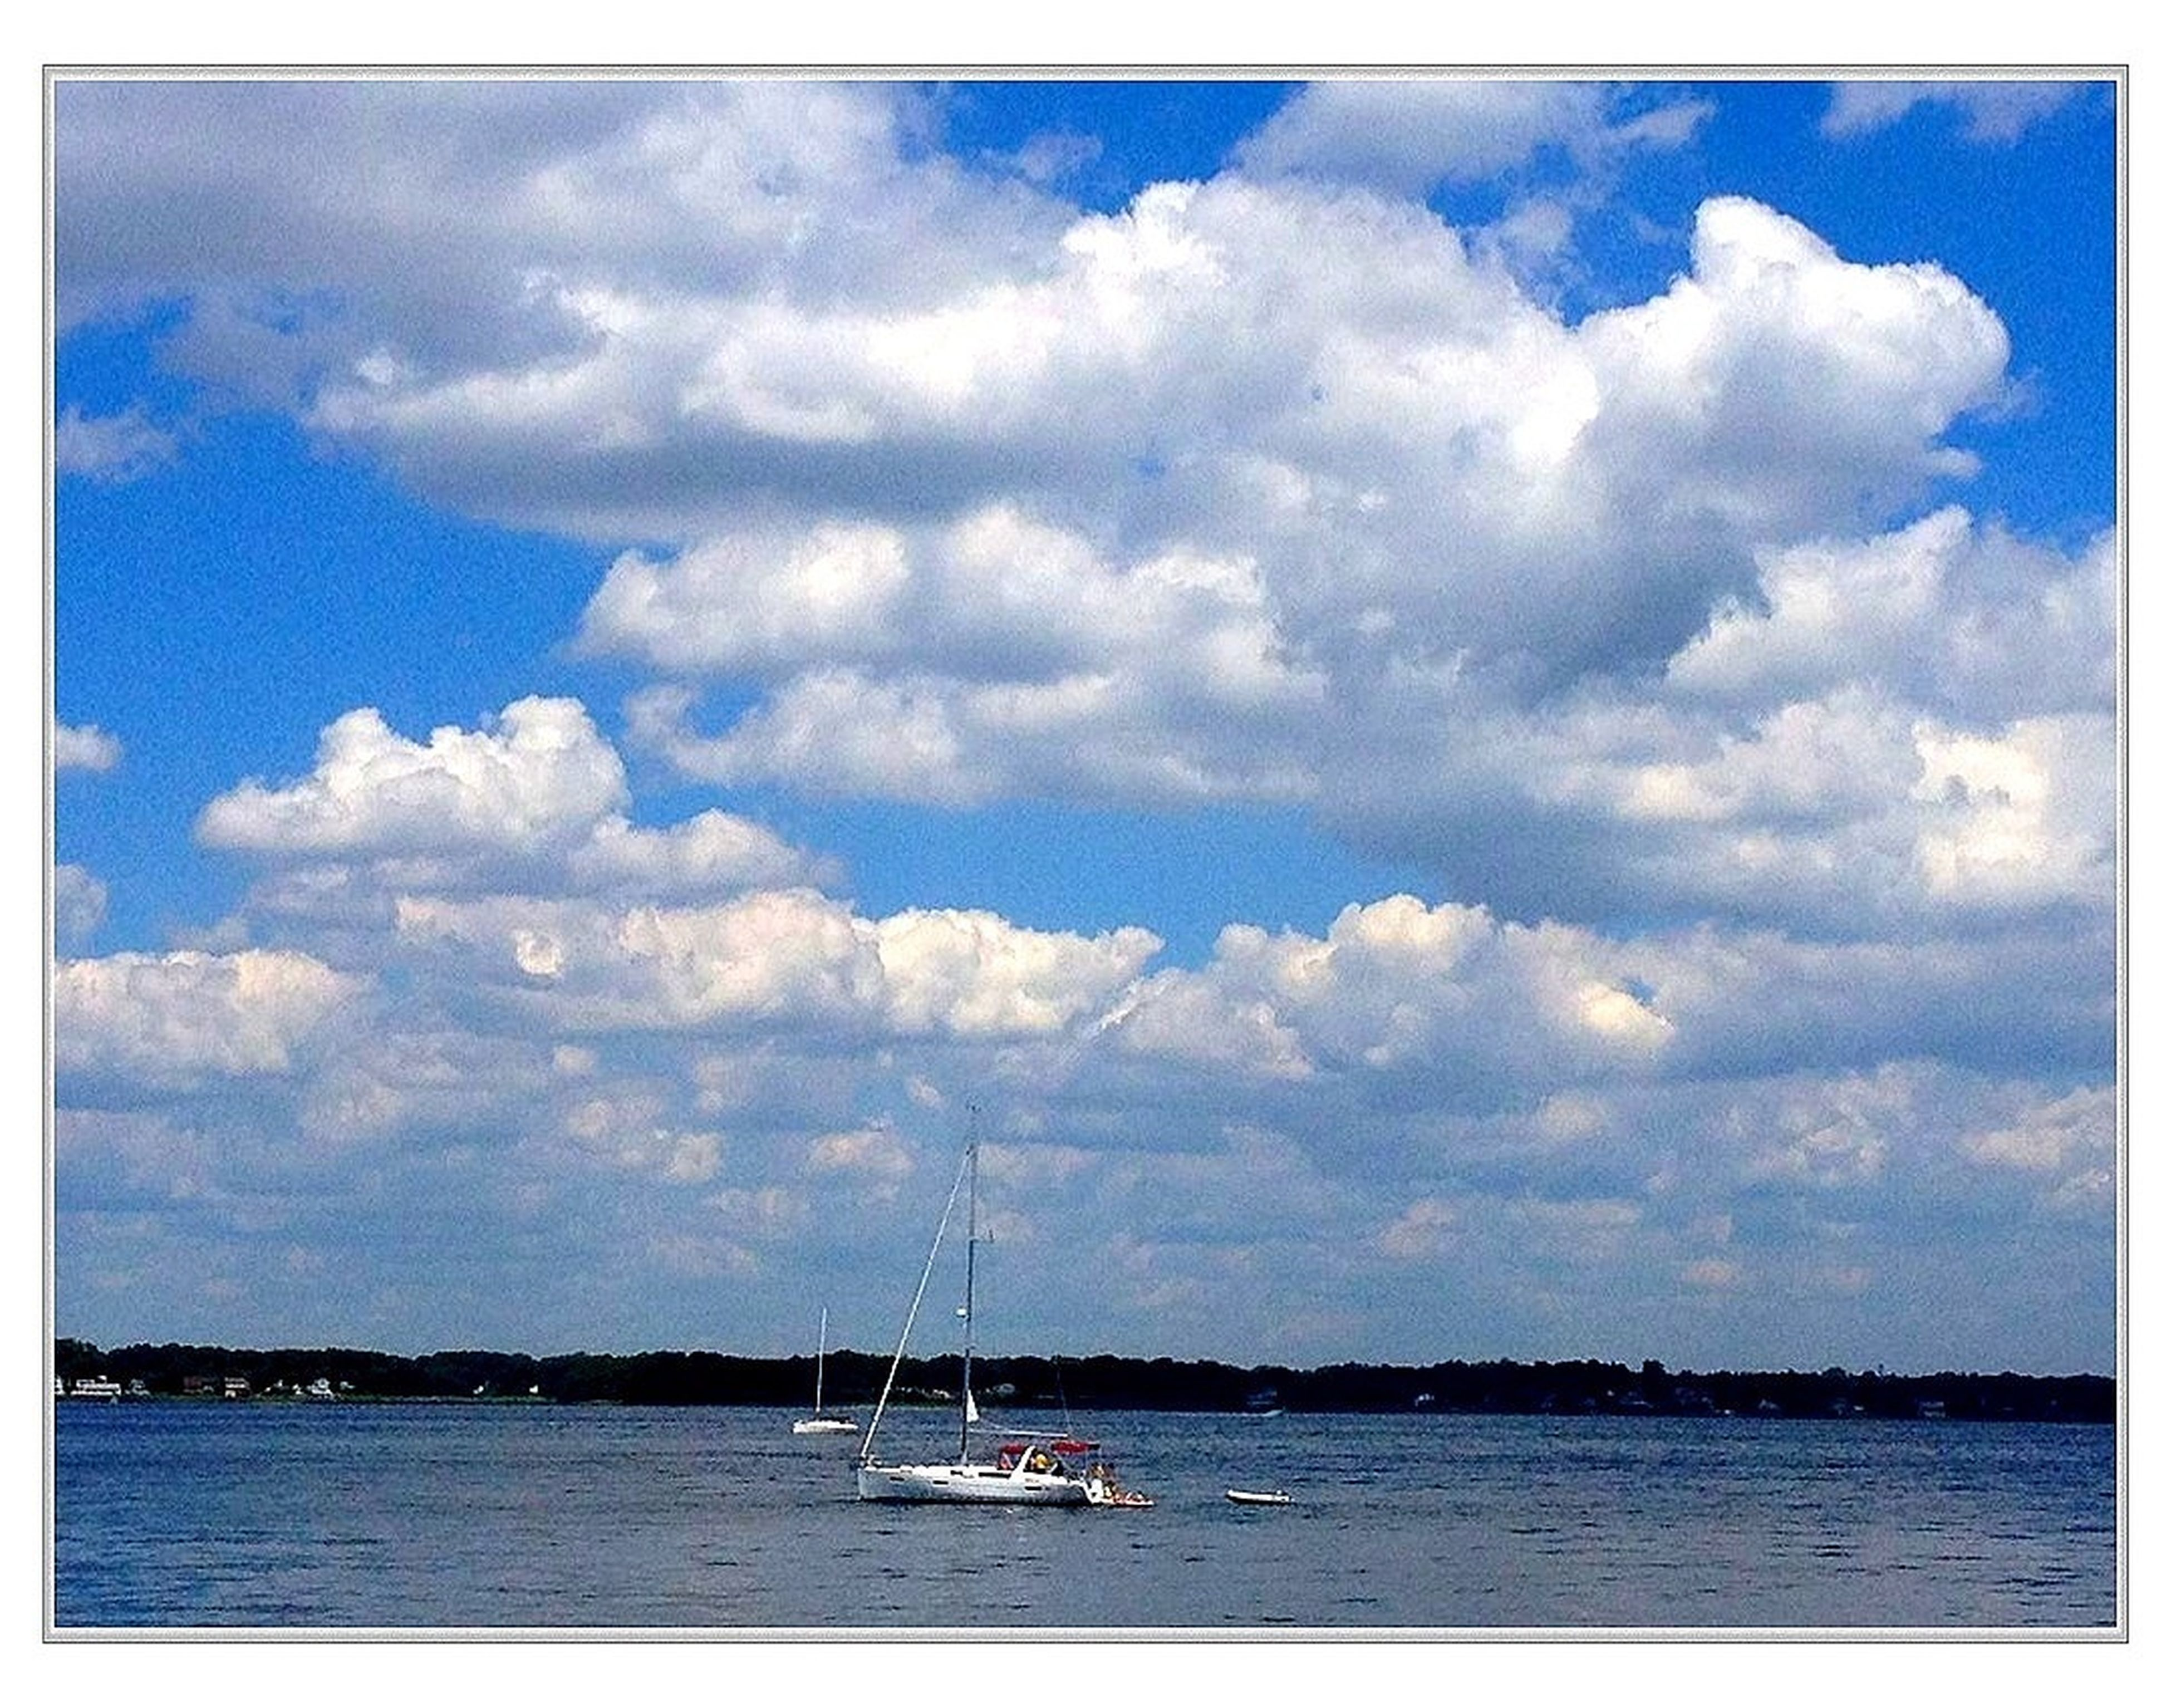 nautical vessel, transportation, mode of transport, sky, water, boat, sea, waterfront, cloud - sky, sailboat, cloudy, mast, cloud, sailing, blue, tranquility, nature, tranquil scene, scenics, beauty in nature